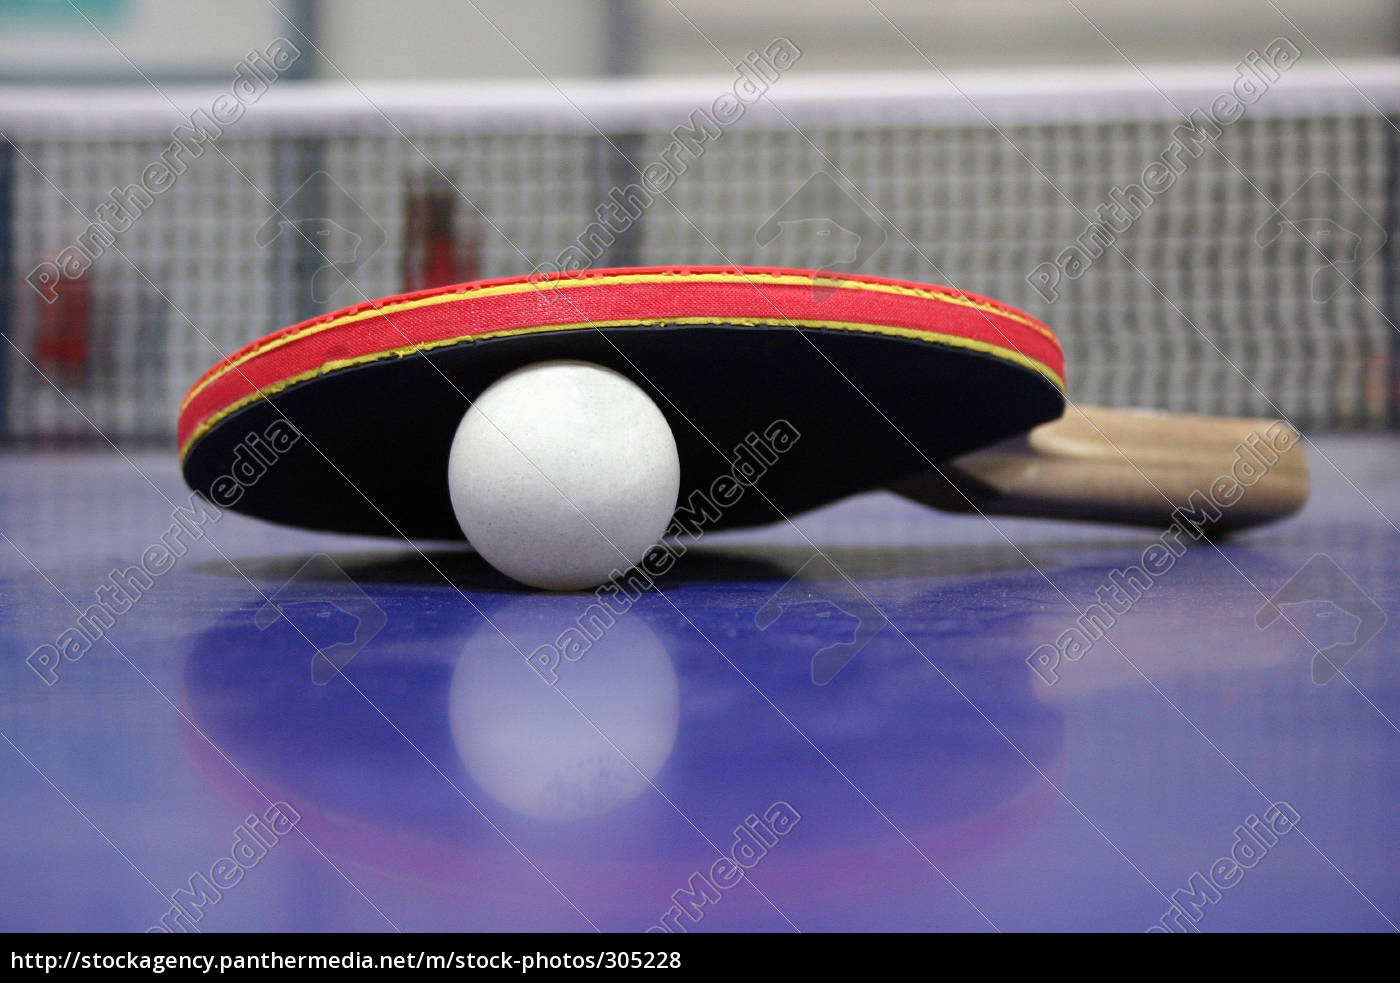 table, tennis - 305228